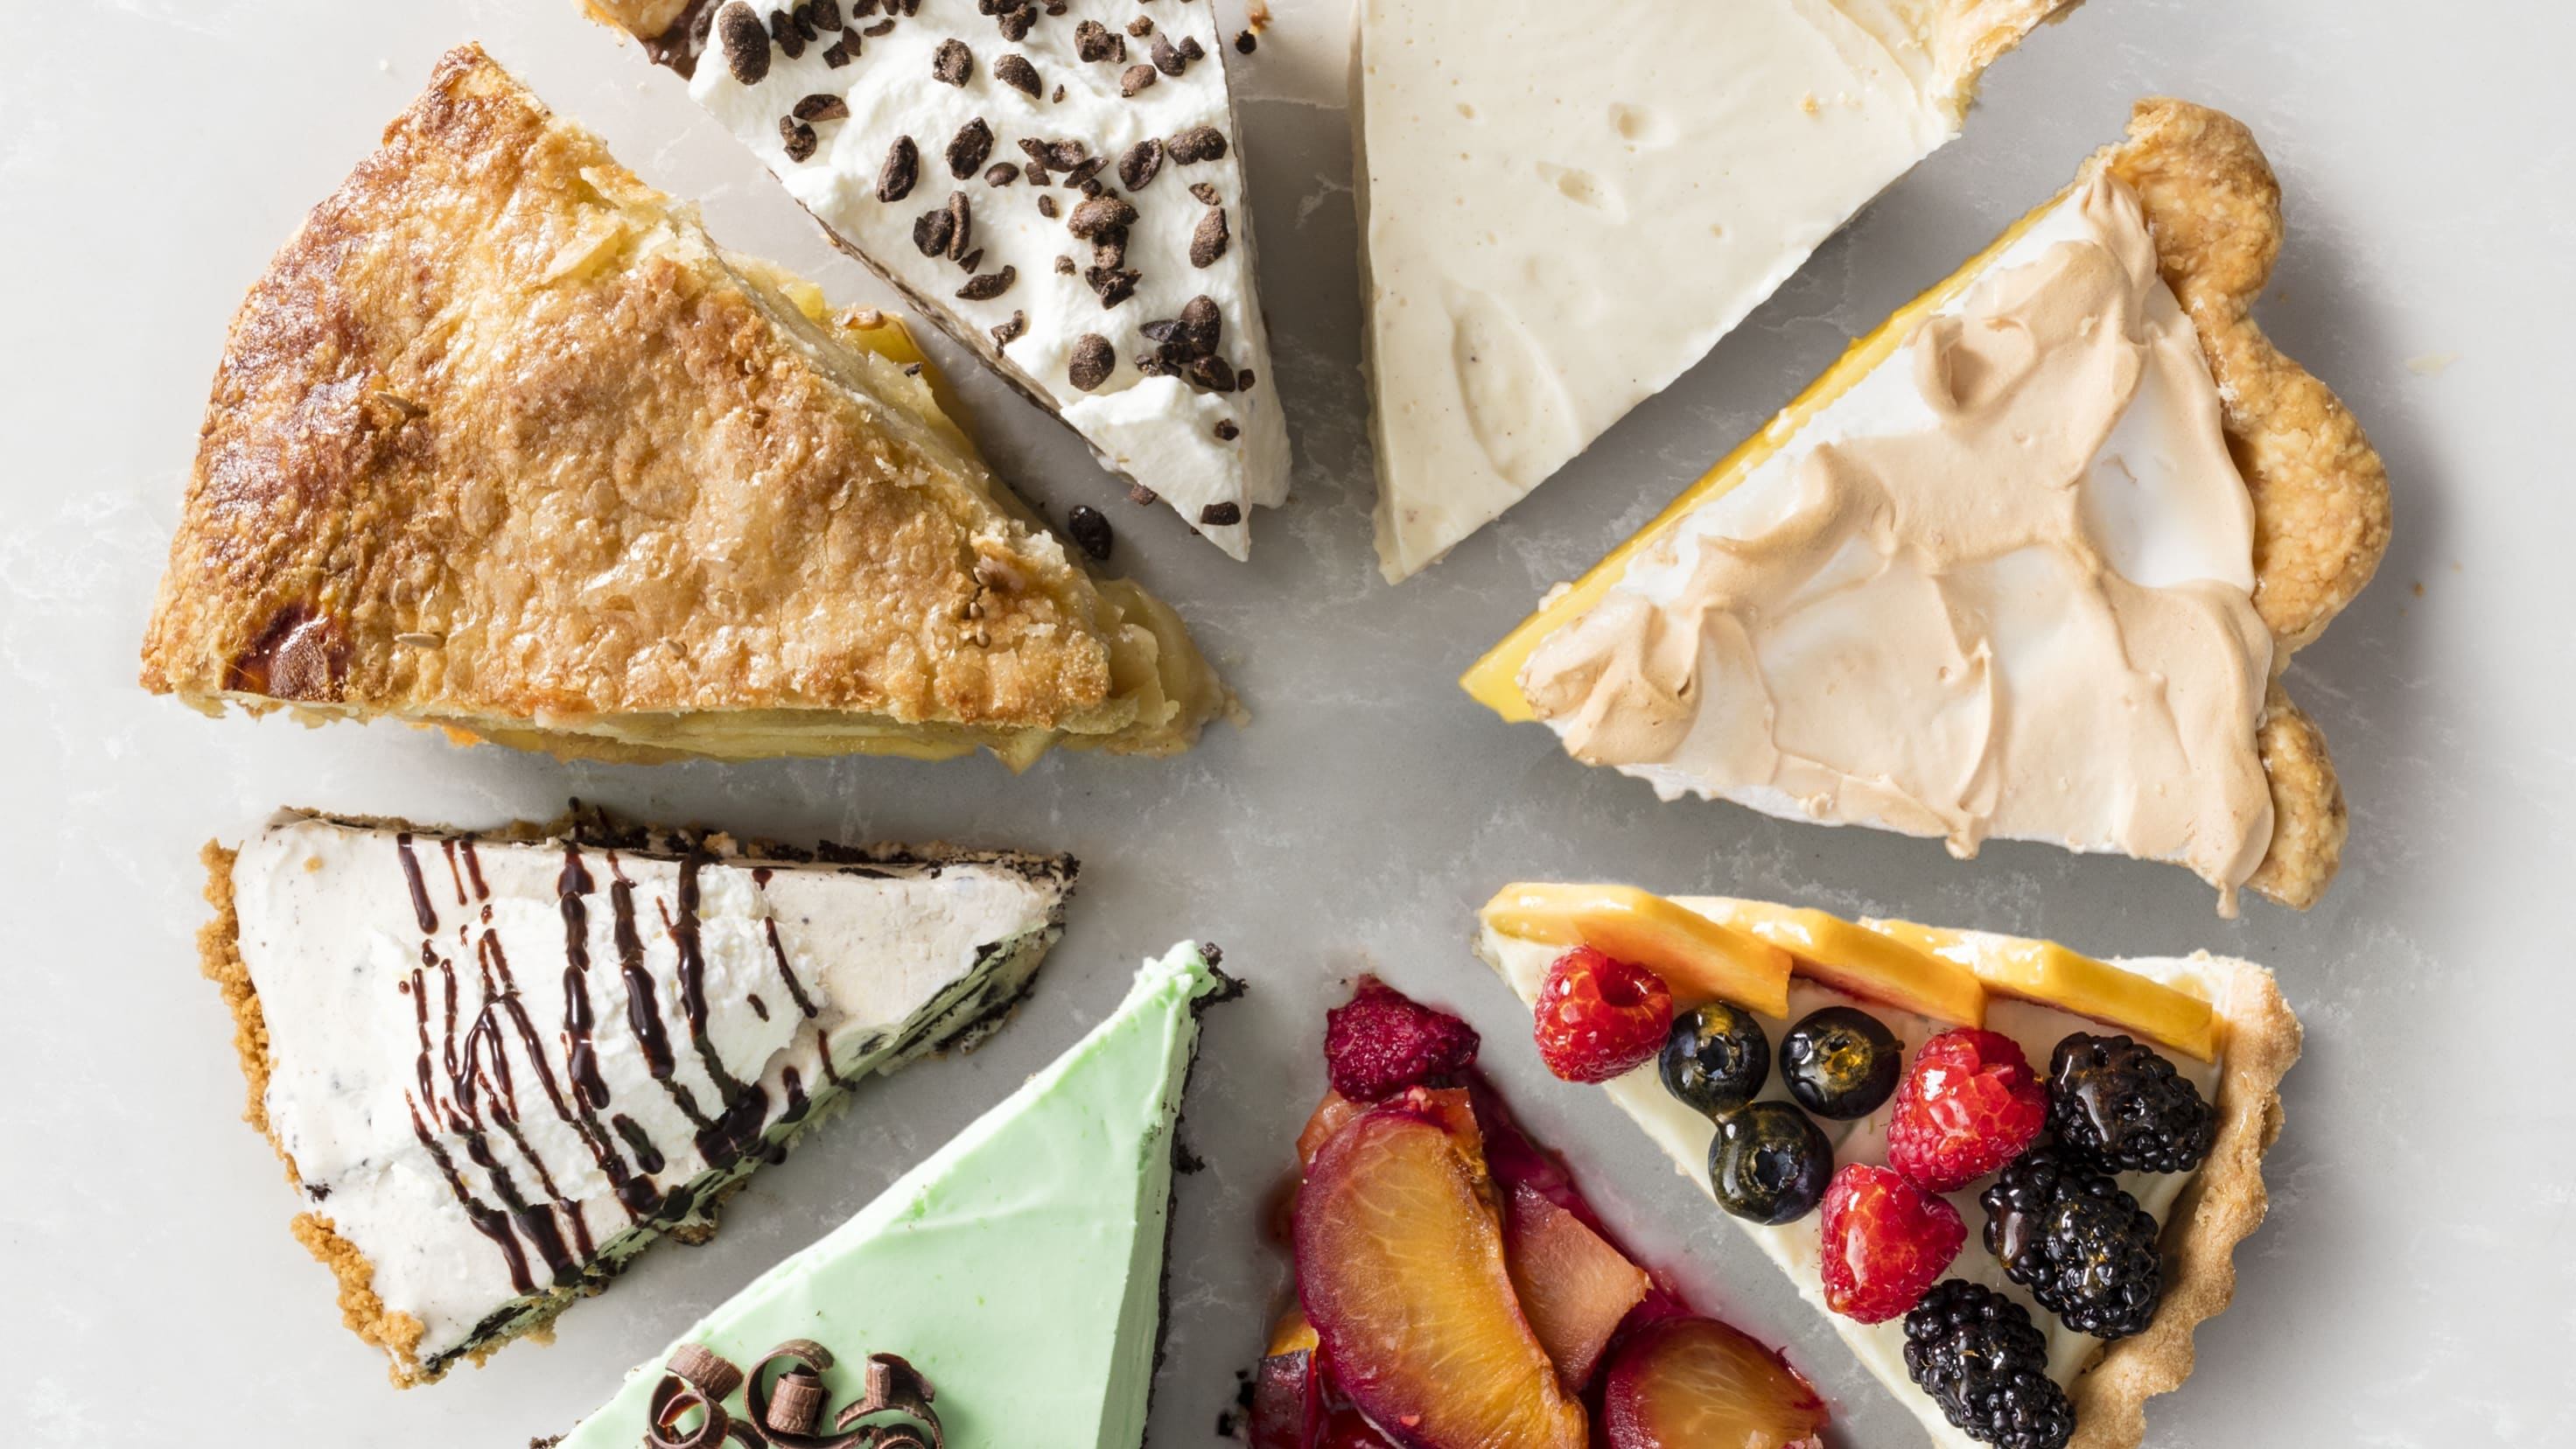 8 Types of Pies You Should Know